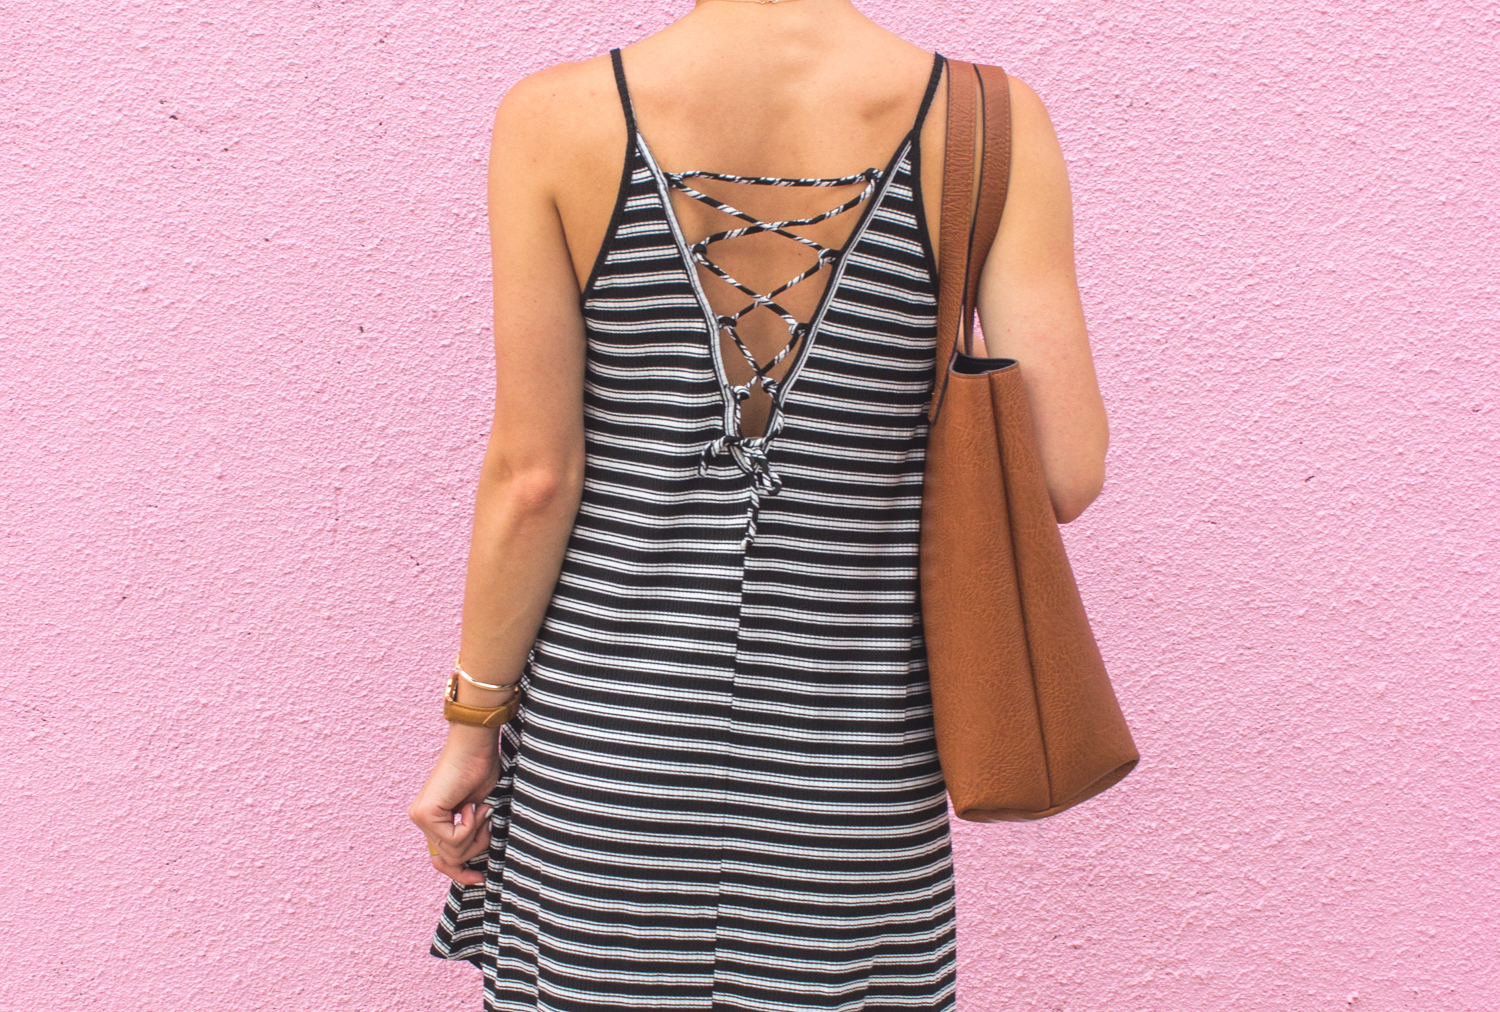 livvyland-blog-olivia-watson-austin-texas-fashion-blogger-pink-wall-coffee-run-summer-lace-up-back-striped-sun-dress-vans-sneakers-8